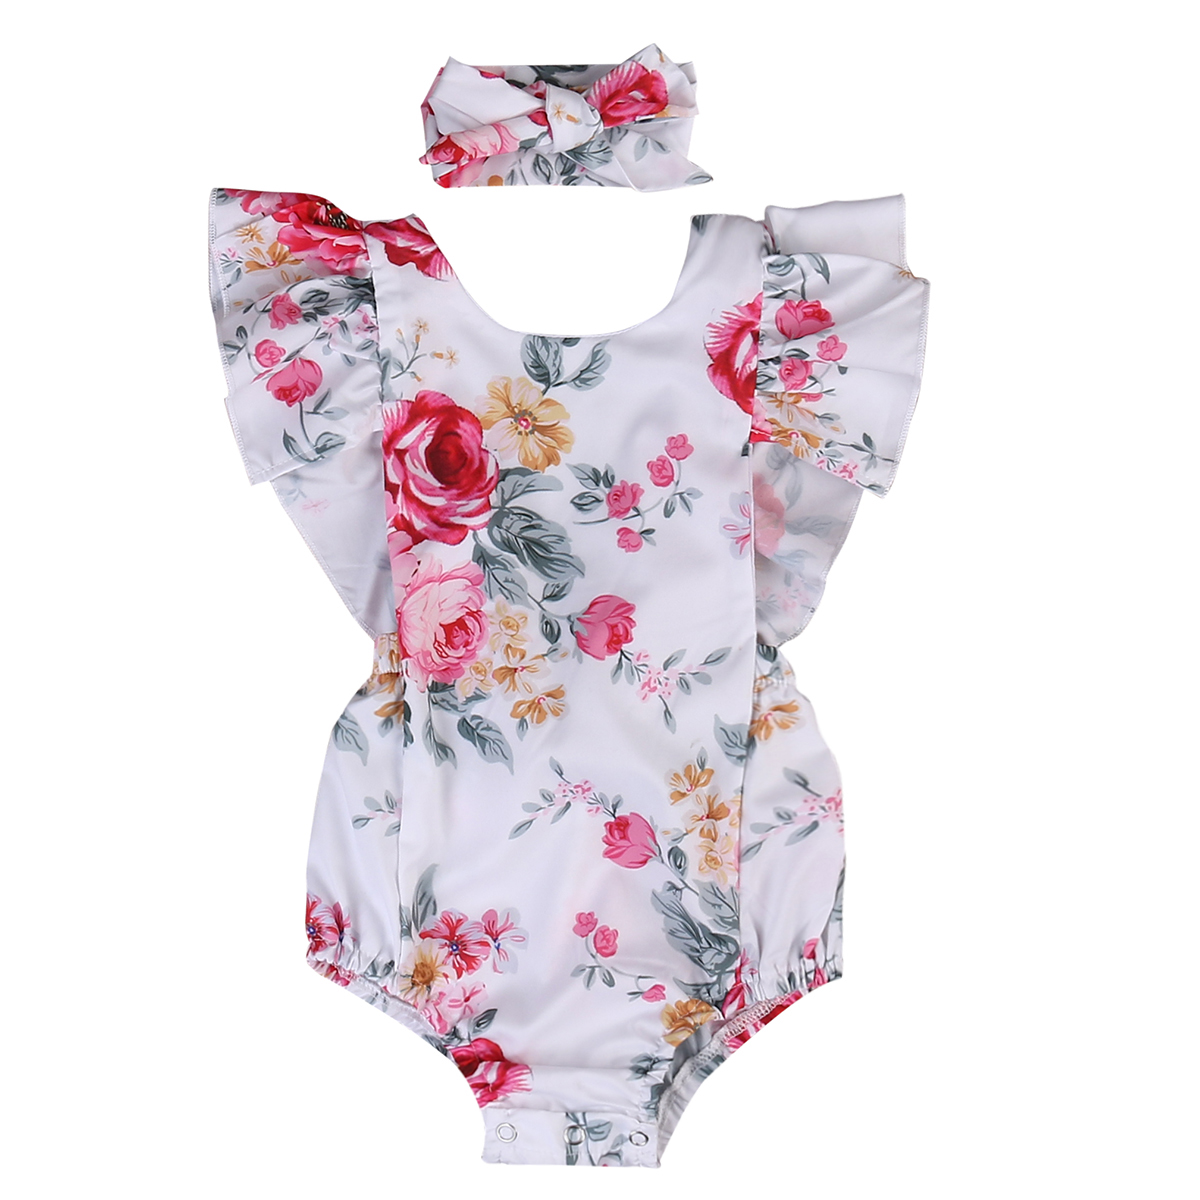 Hi Hi Baby Store Newborn Baby Girl Floral Ruffle Romper Jumpsuit Body Outfits Sunsuit Cotton  Clothes